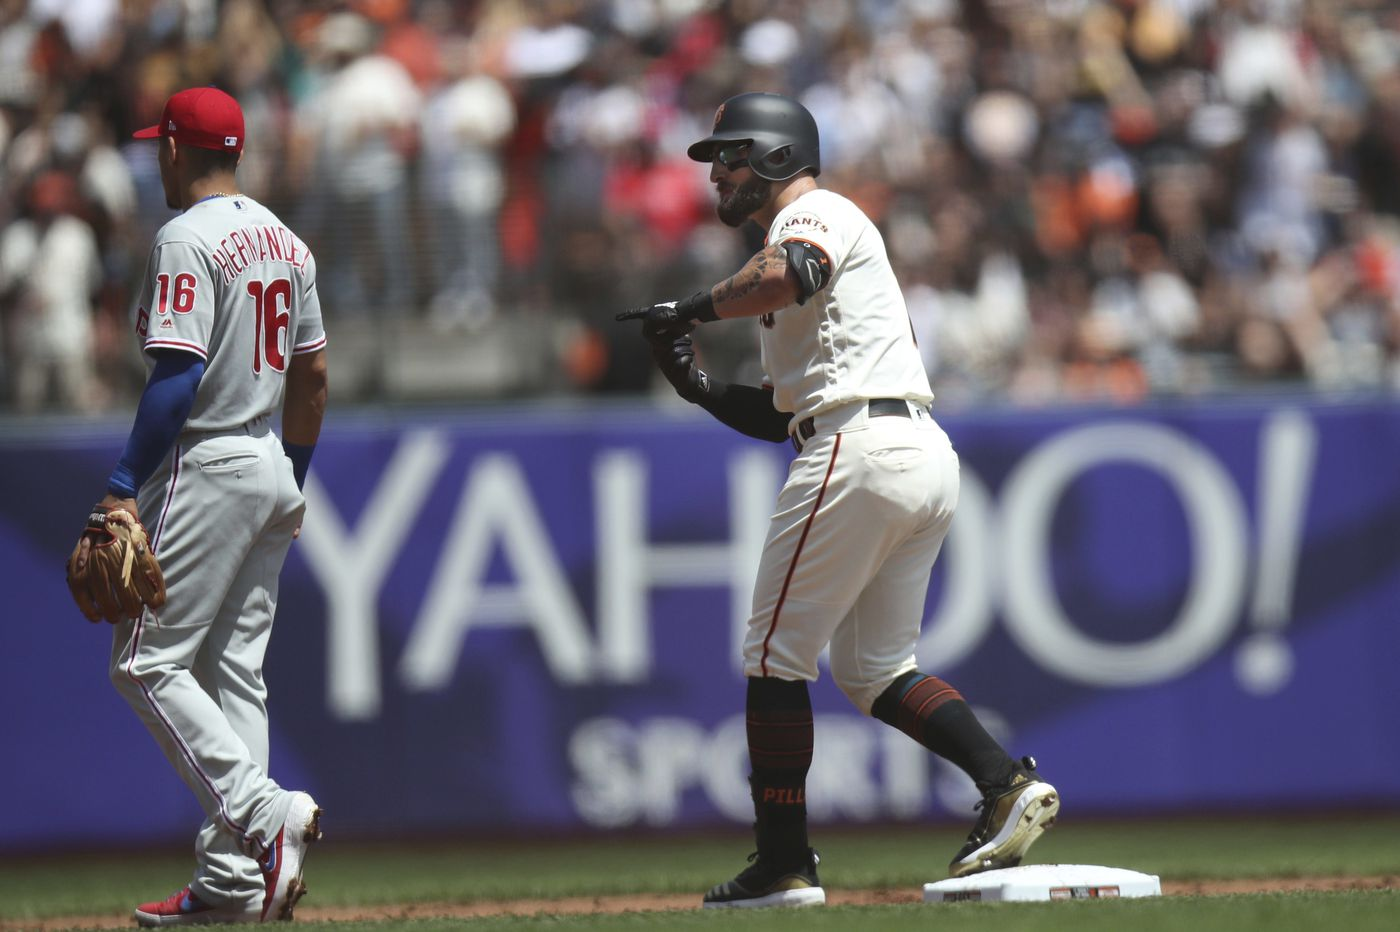 Phillies' disappearing offense gets shushed once again in another loss to Giants